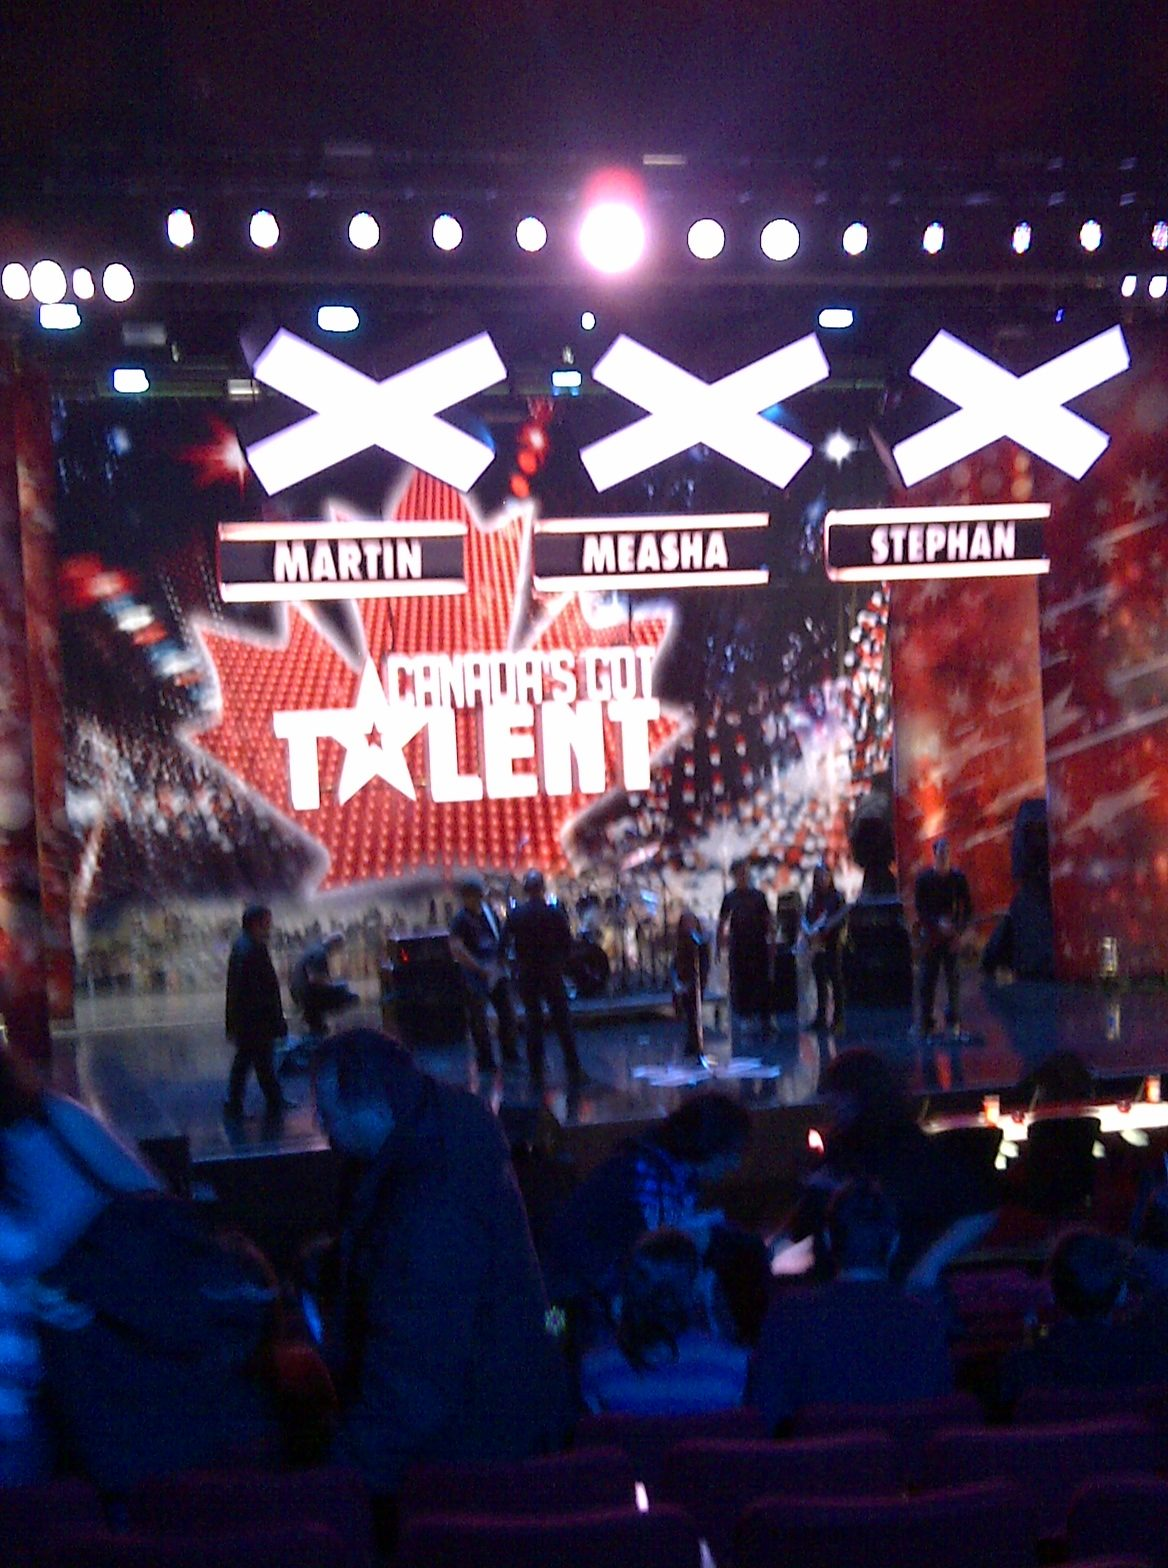 People On Stage Doing Audition